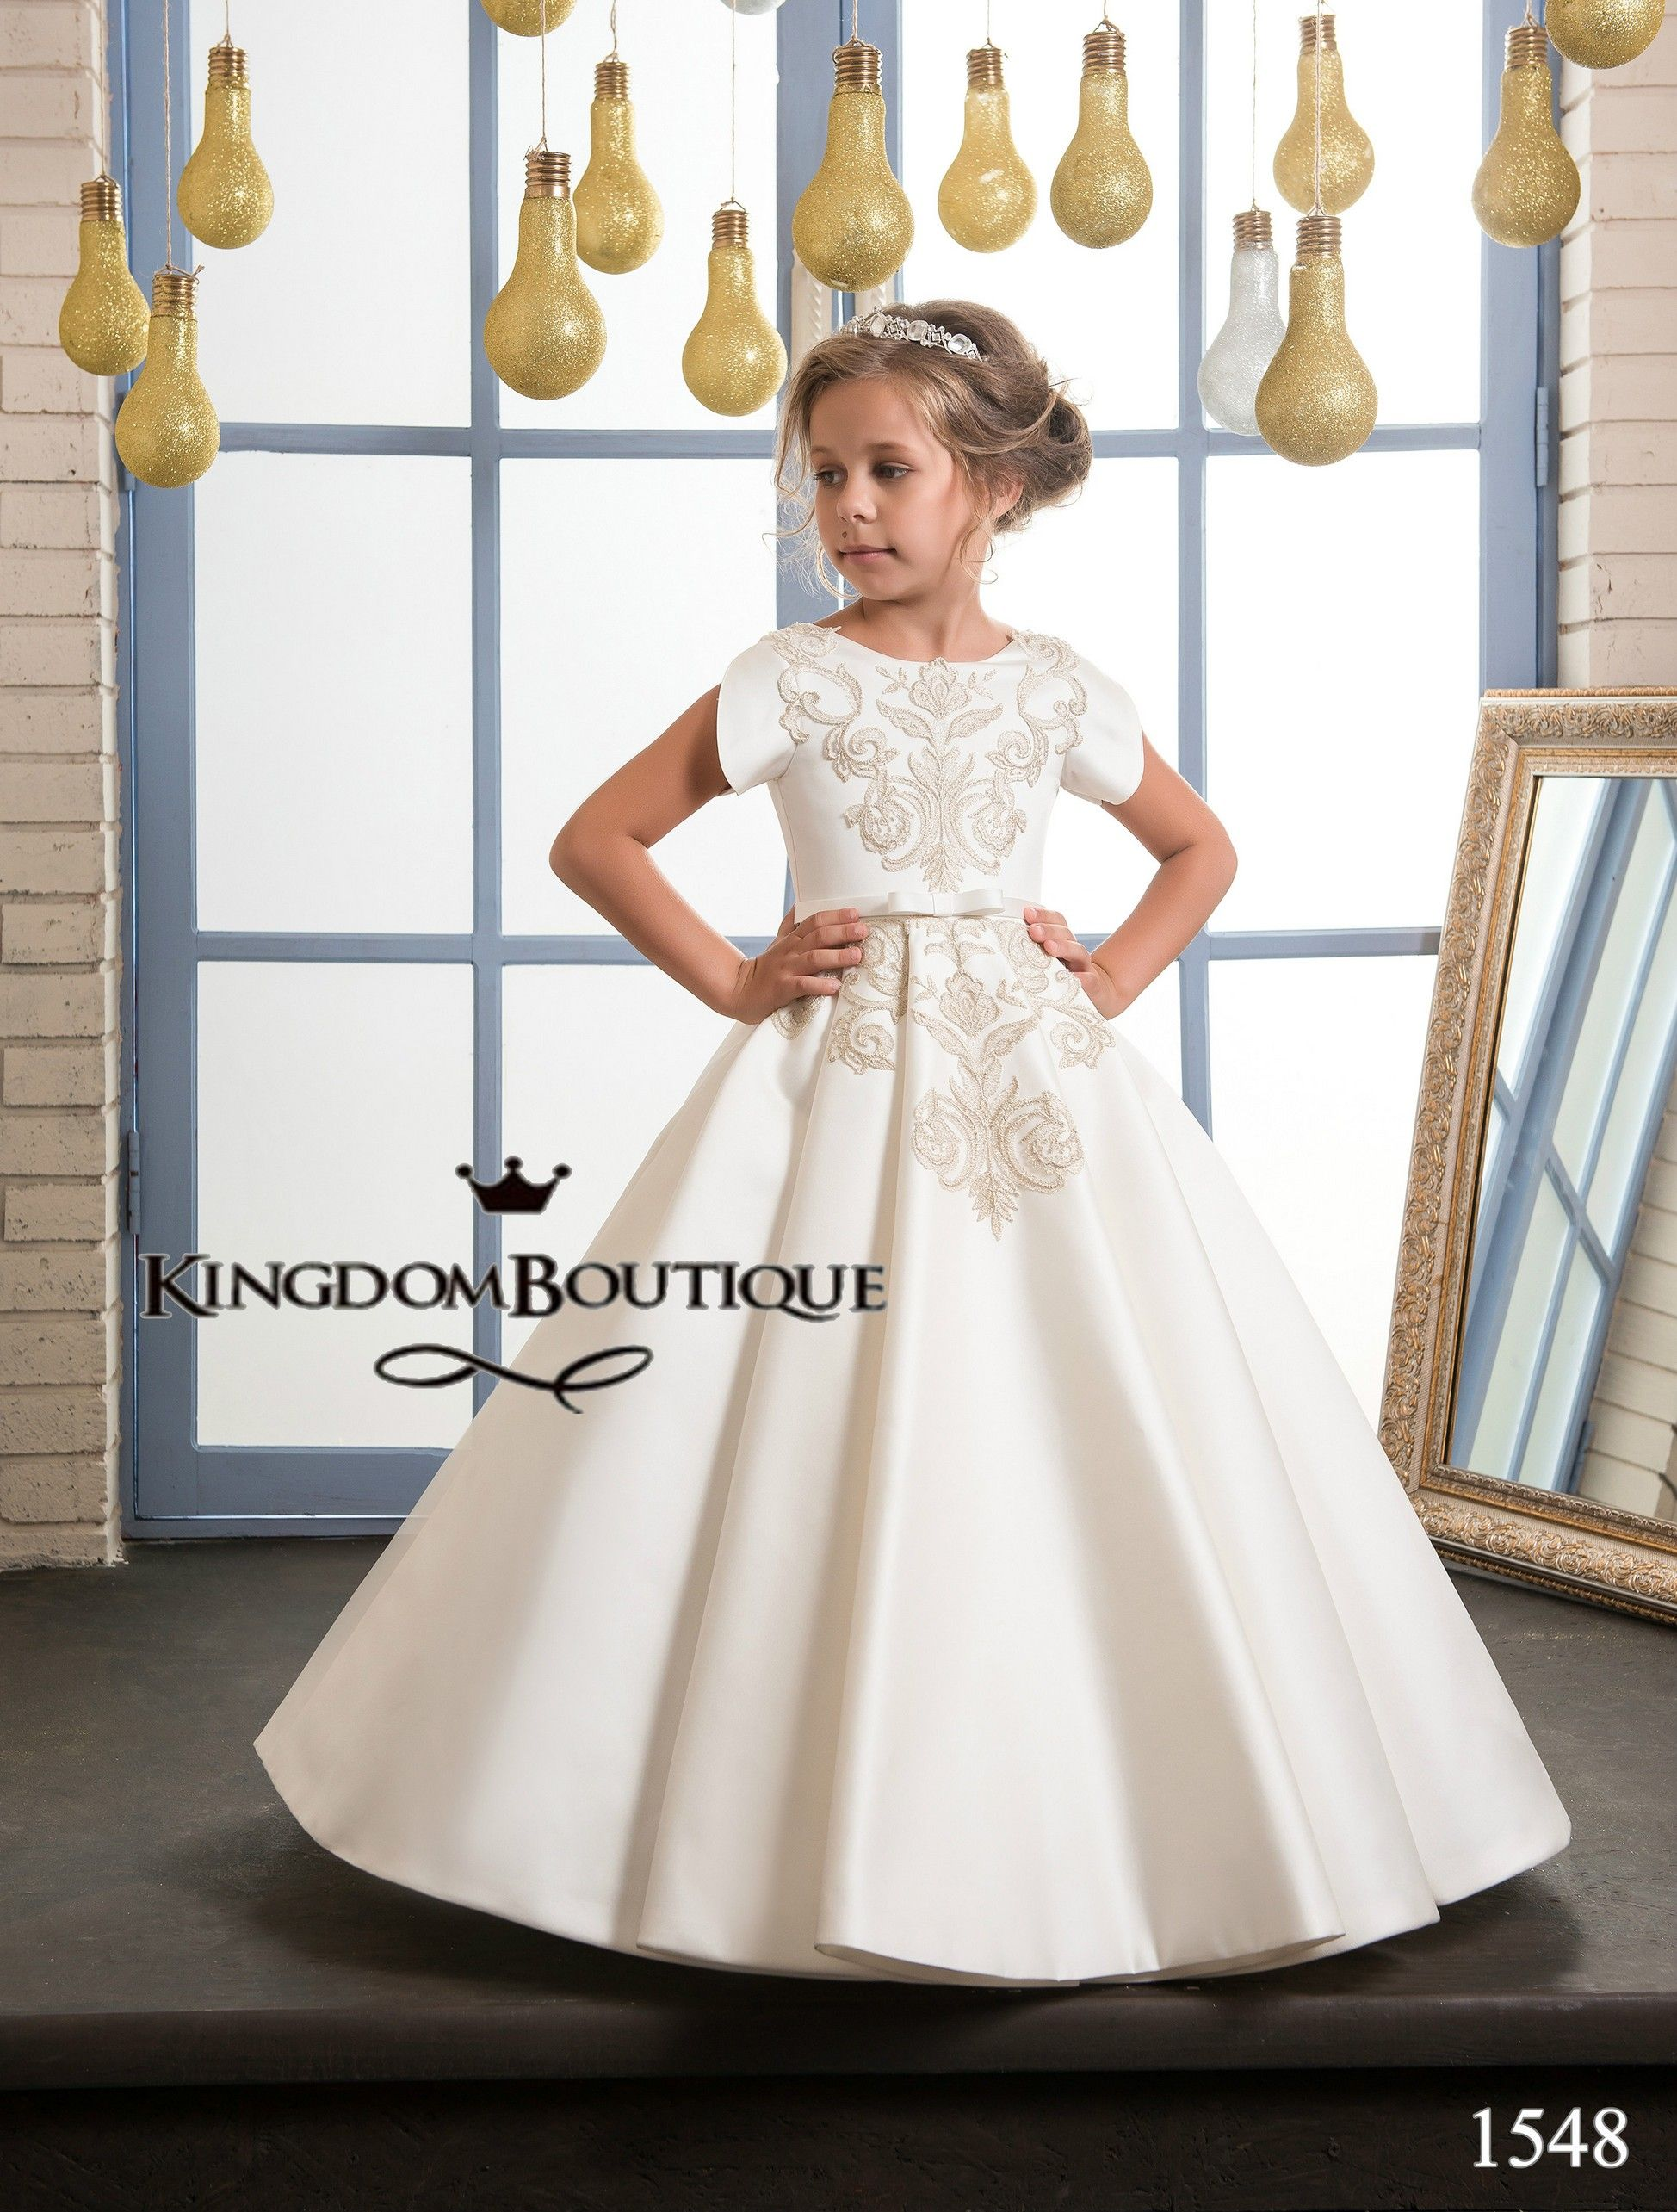 663d3fd9b81 Sleeping Beauty   Dress 16-1548 - kingdom.boutique Children s Wedding  Dresses Flower Girl Dresses Pageant dress